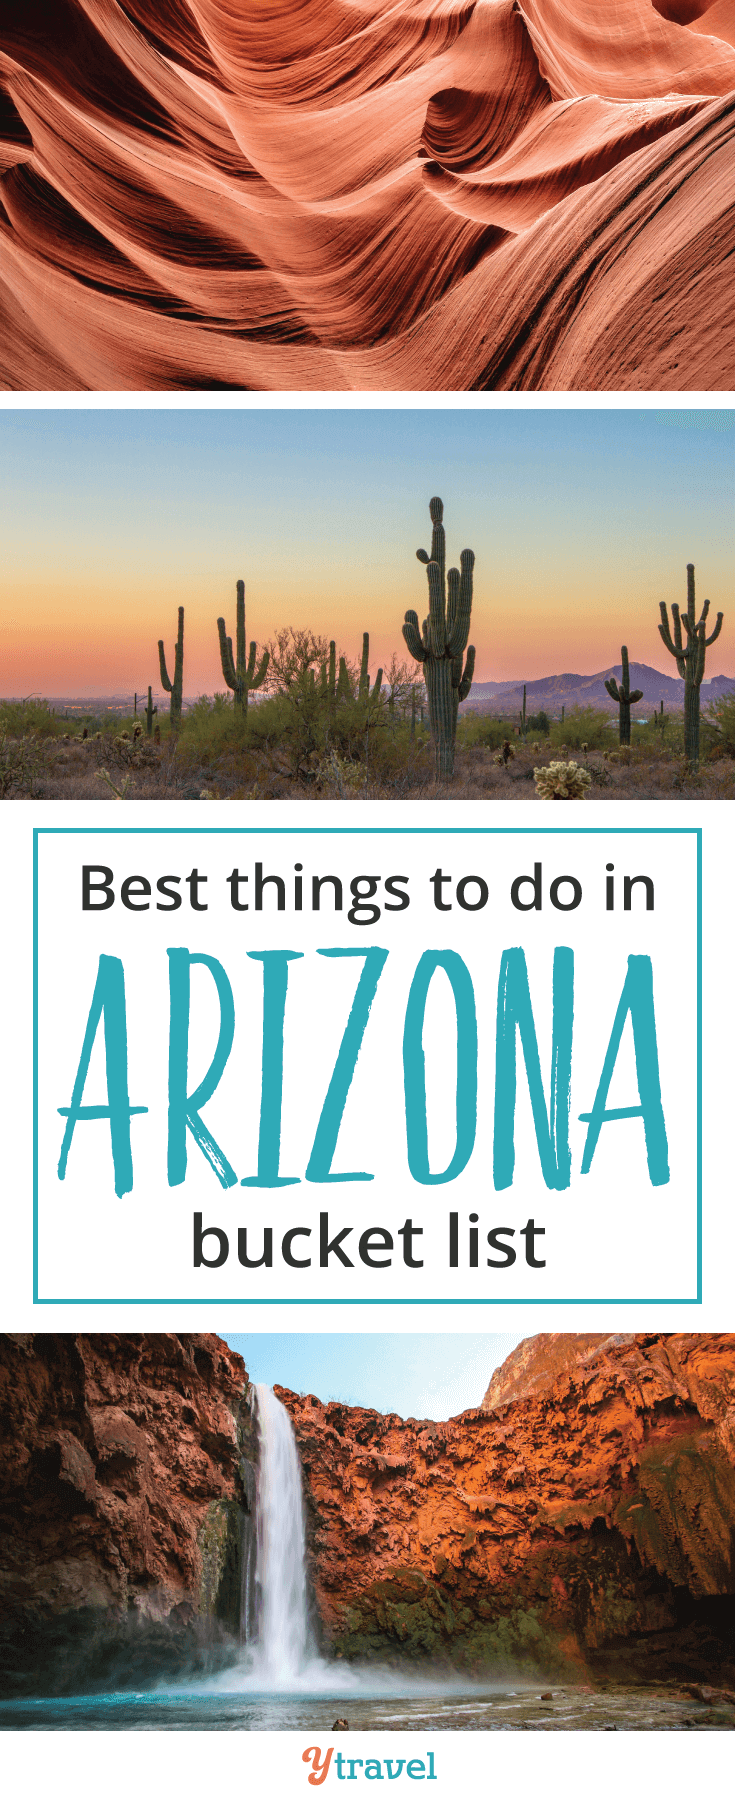 We've rounded up some of the best things to do in Arizona to add to our bucket list. Do you have any Arizona travel tips and destination information to share?